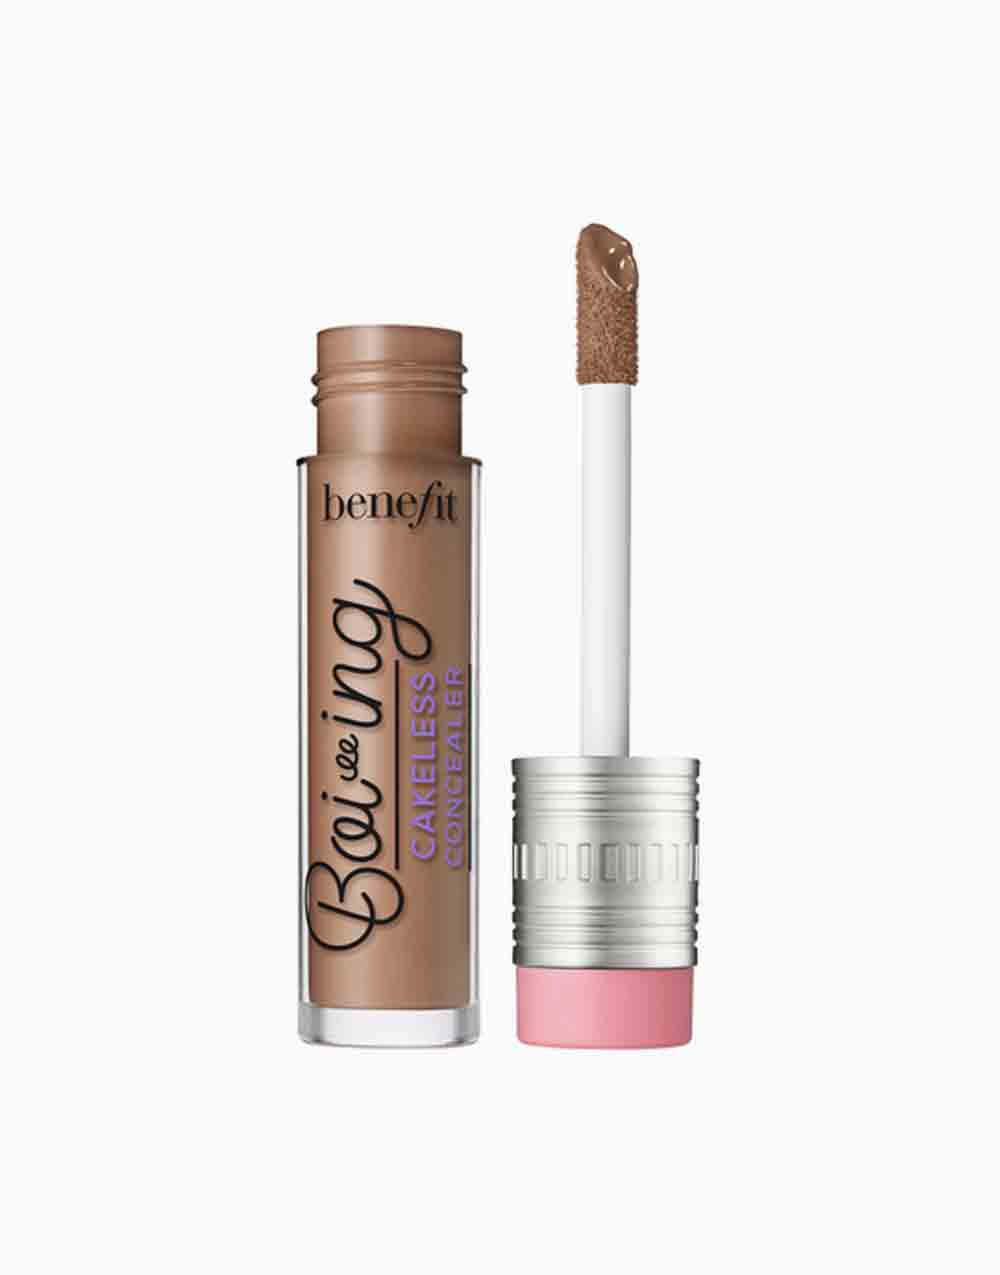 Boi-ing Cakeless Concealer by Benefit | Shade 12